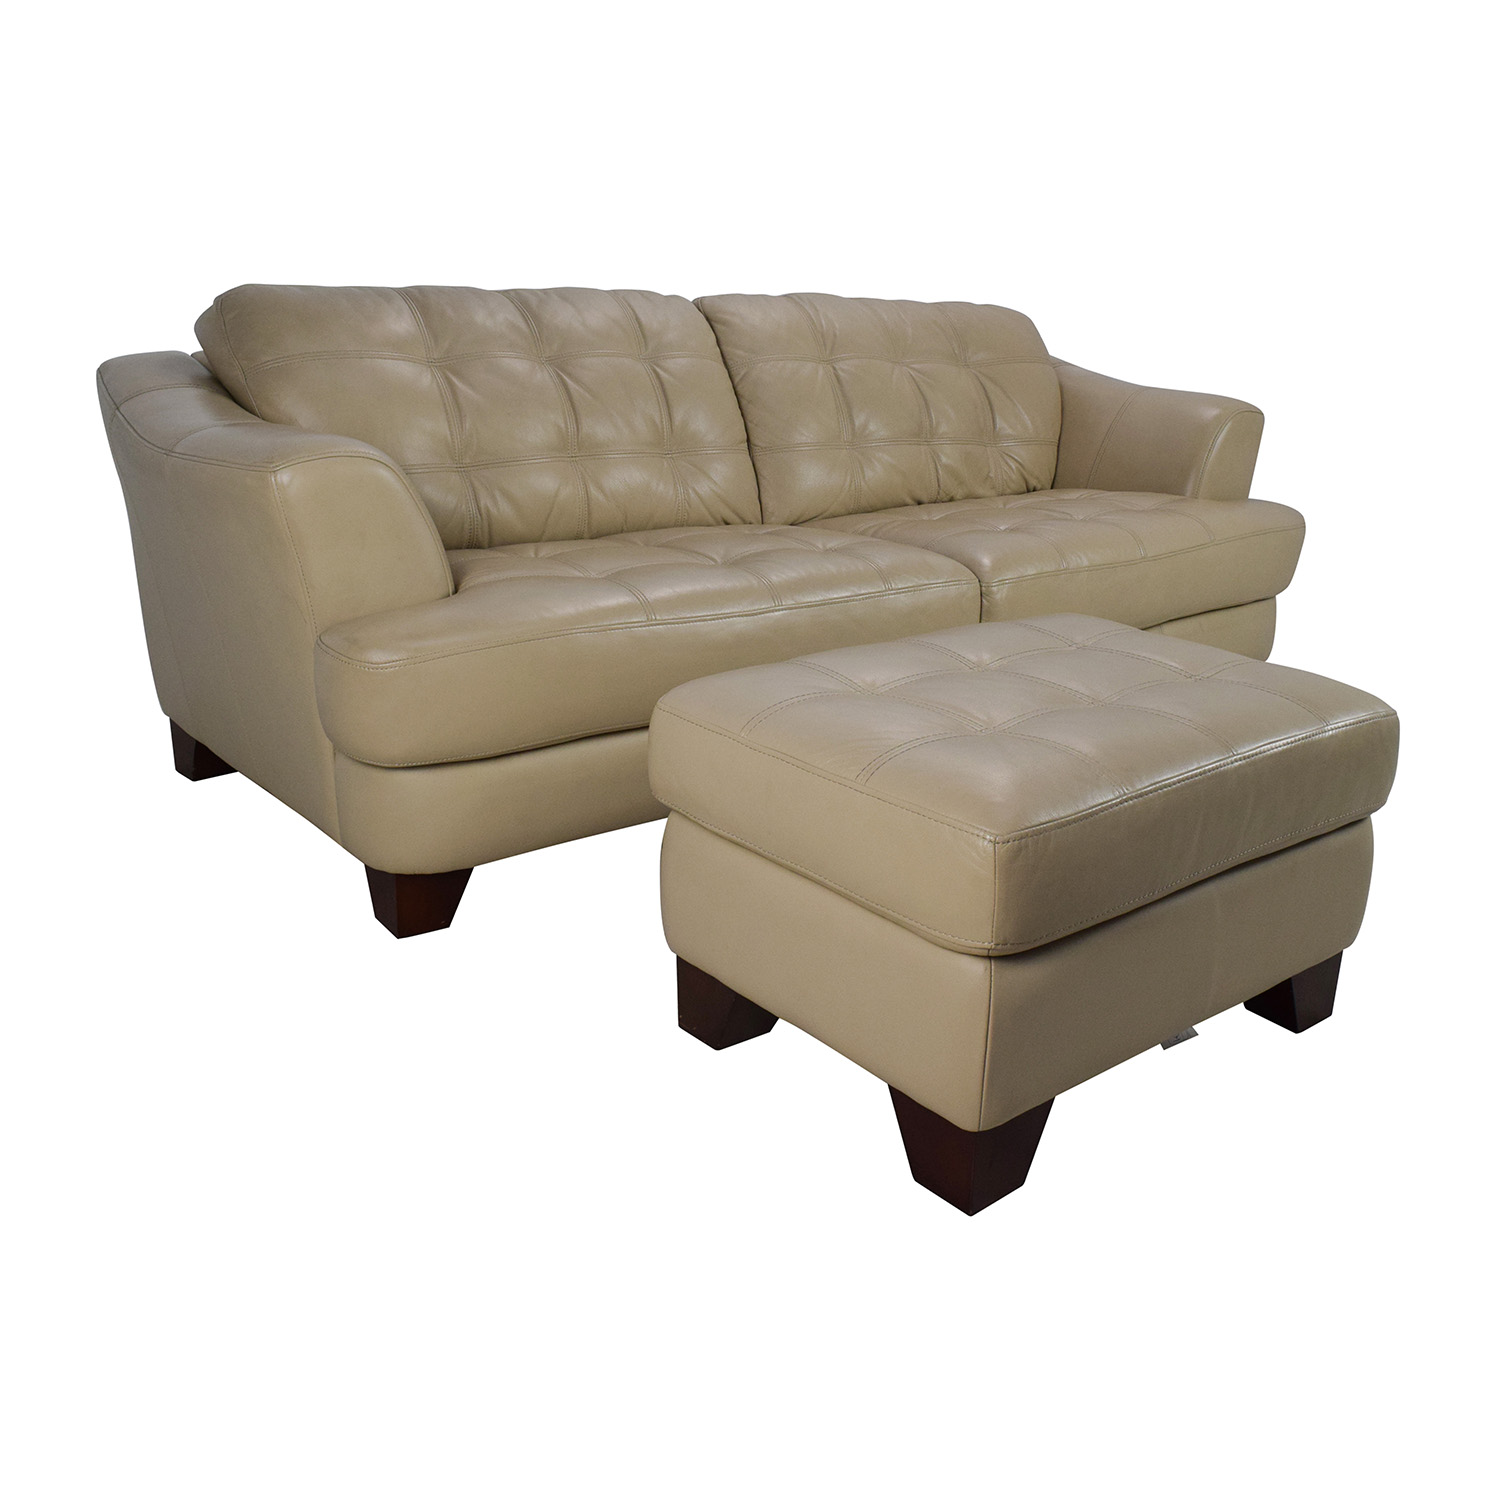 65 Off Bob 39 S Furniture Bob 39 S Furniture Leather Couch With Ottoman Sofas